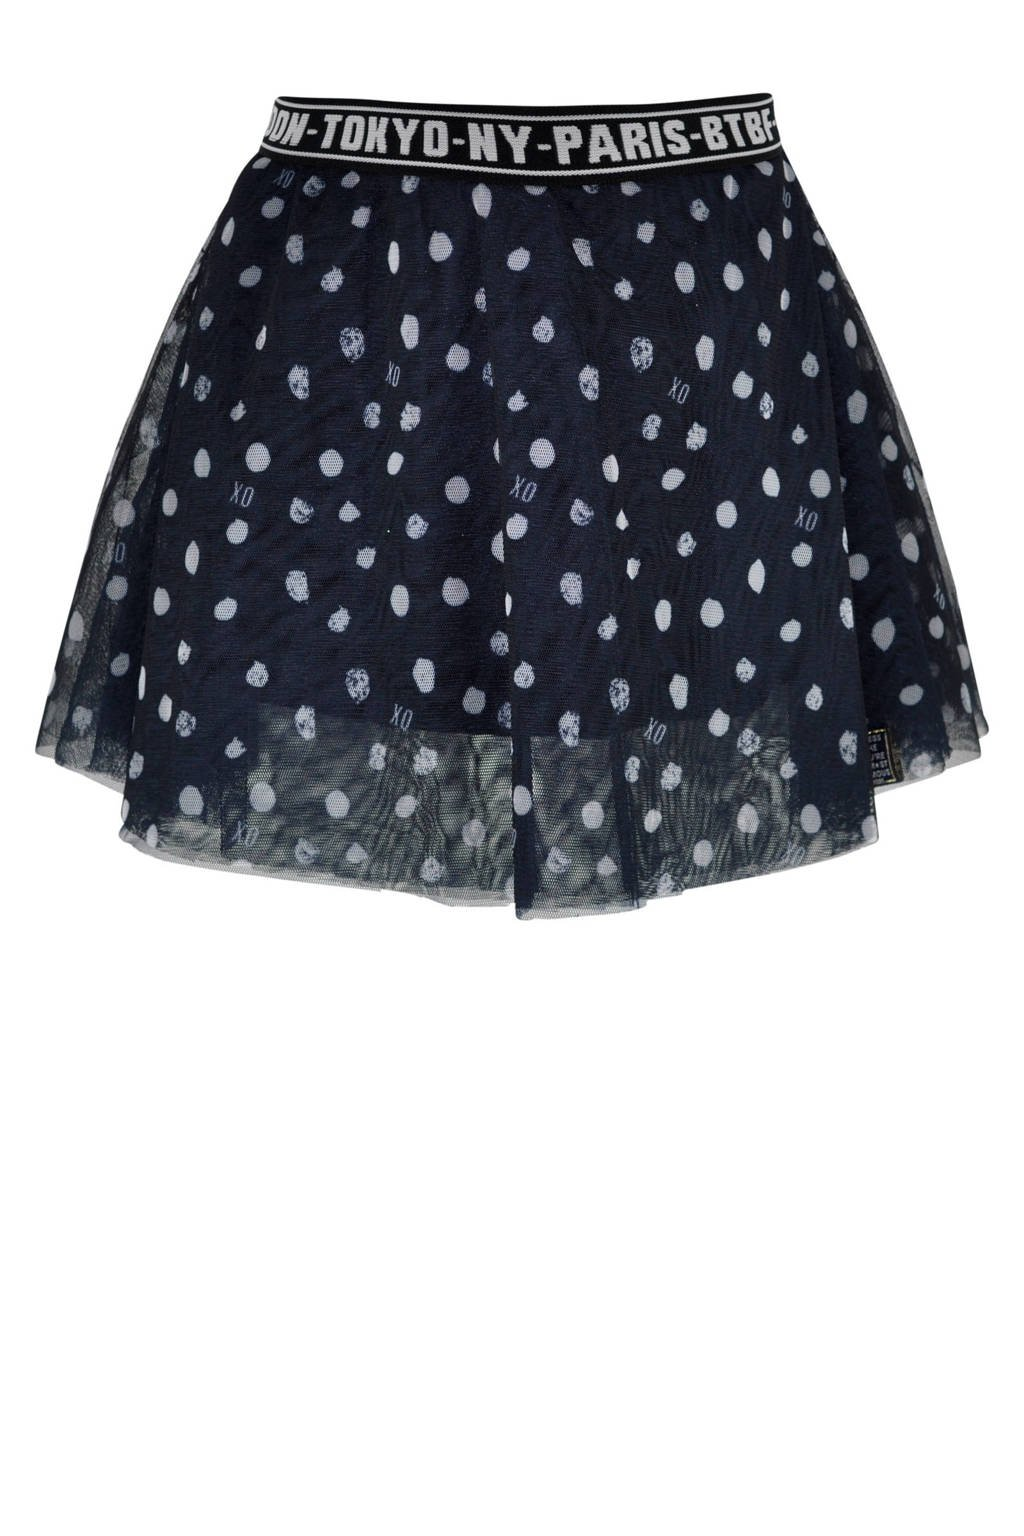 born to be famous. semi-transparante rok Dream met all over print navy, Navy